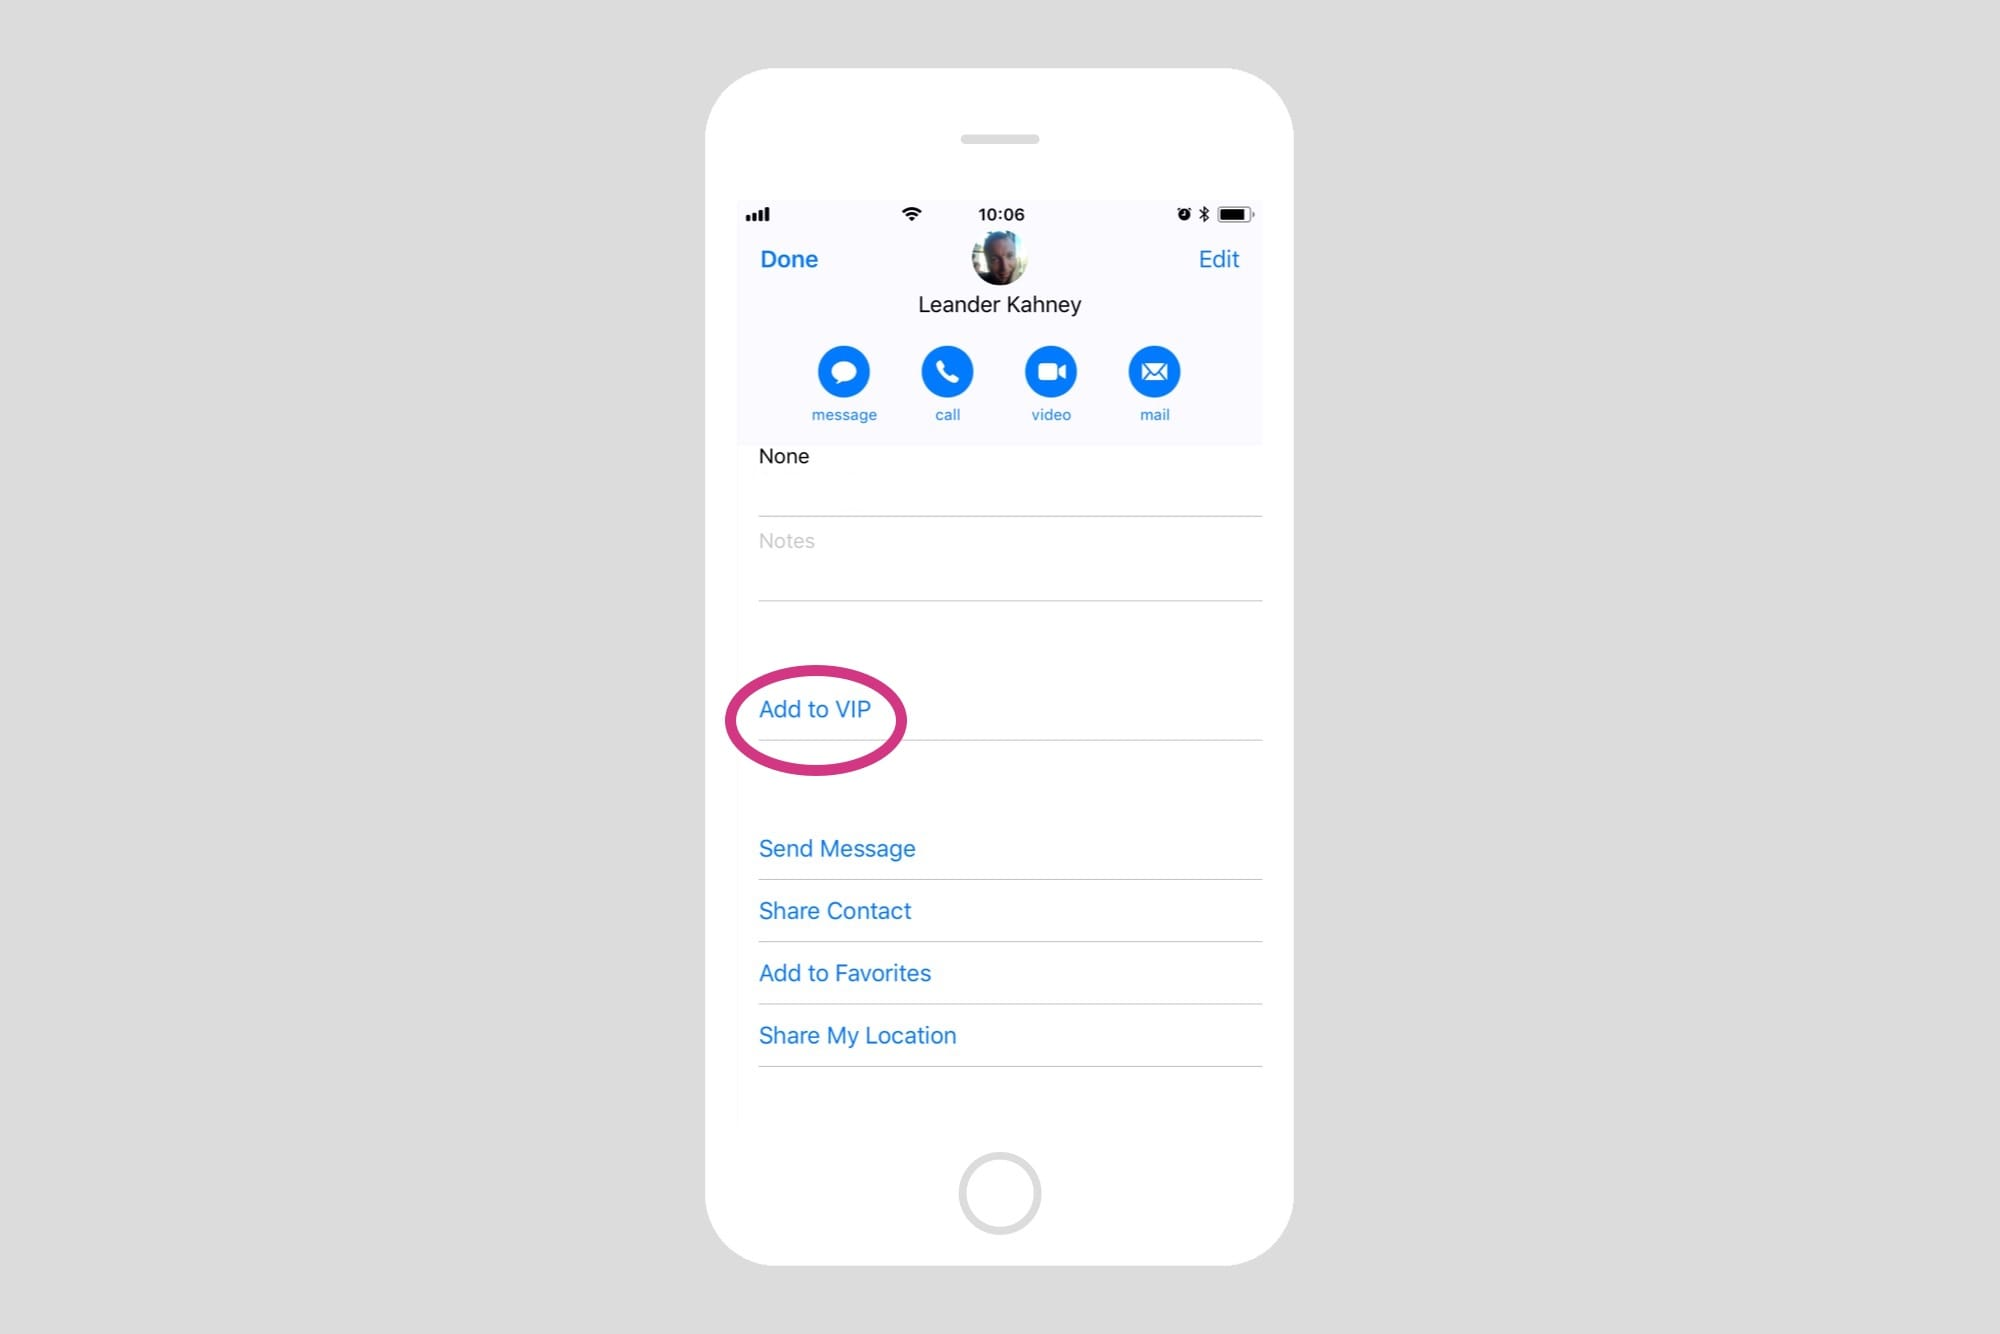 Adding contacts to the VIP list is easy.